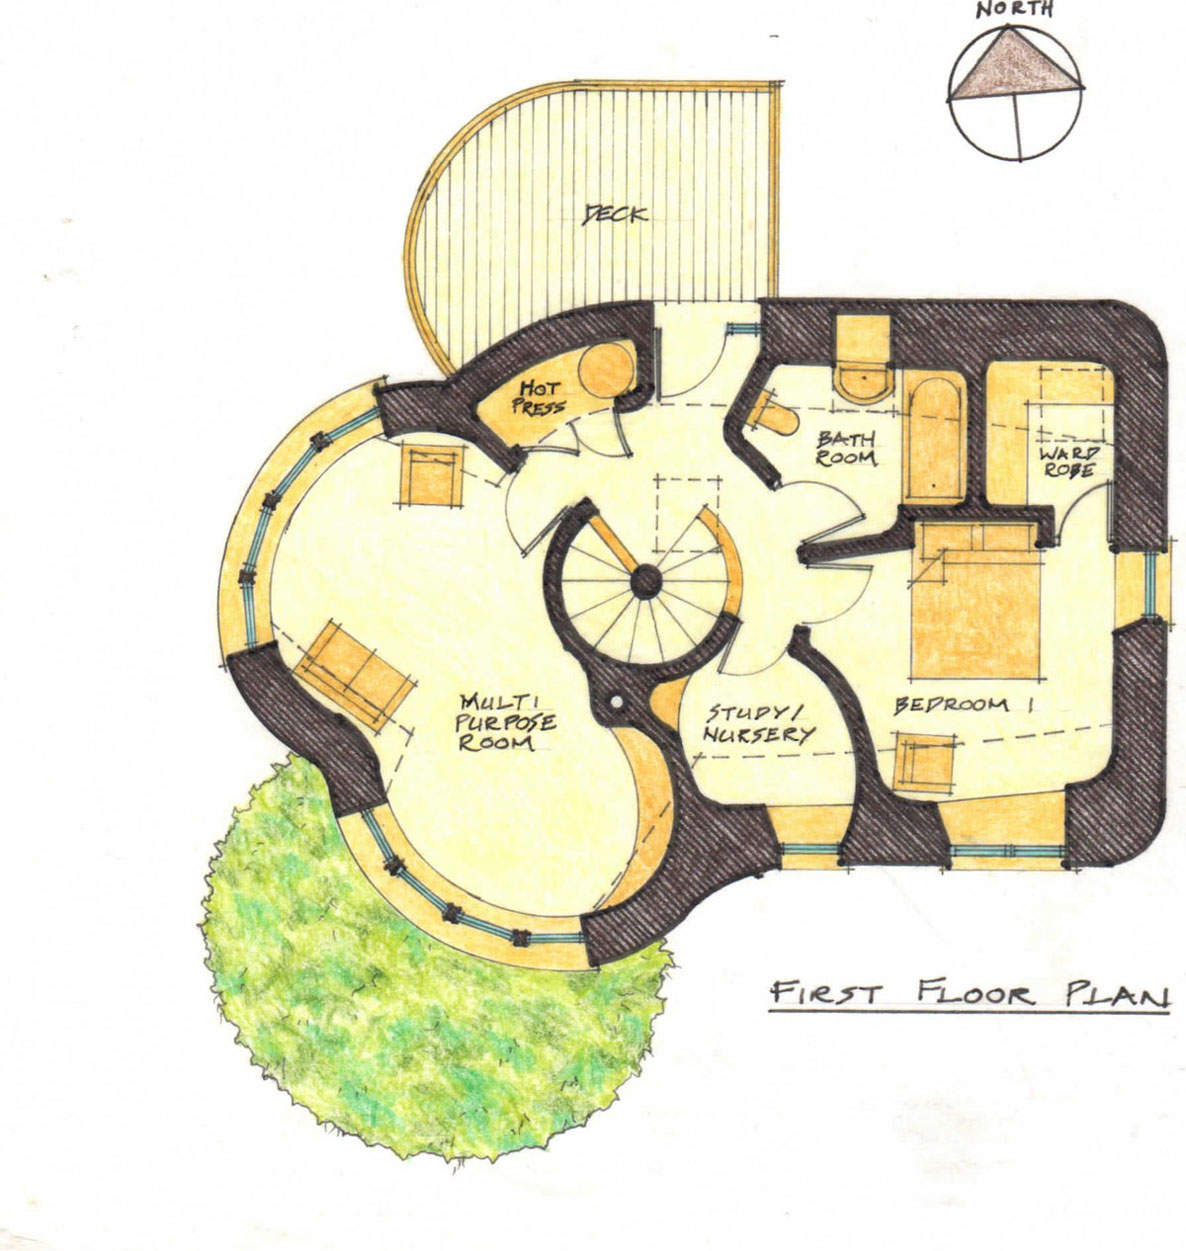 Sick cob house plans off grid pinterest floor Cobb house plans